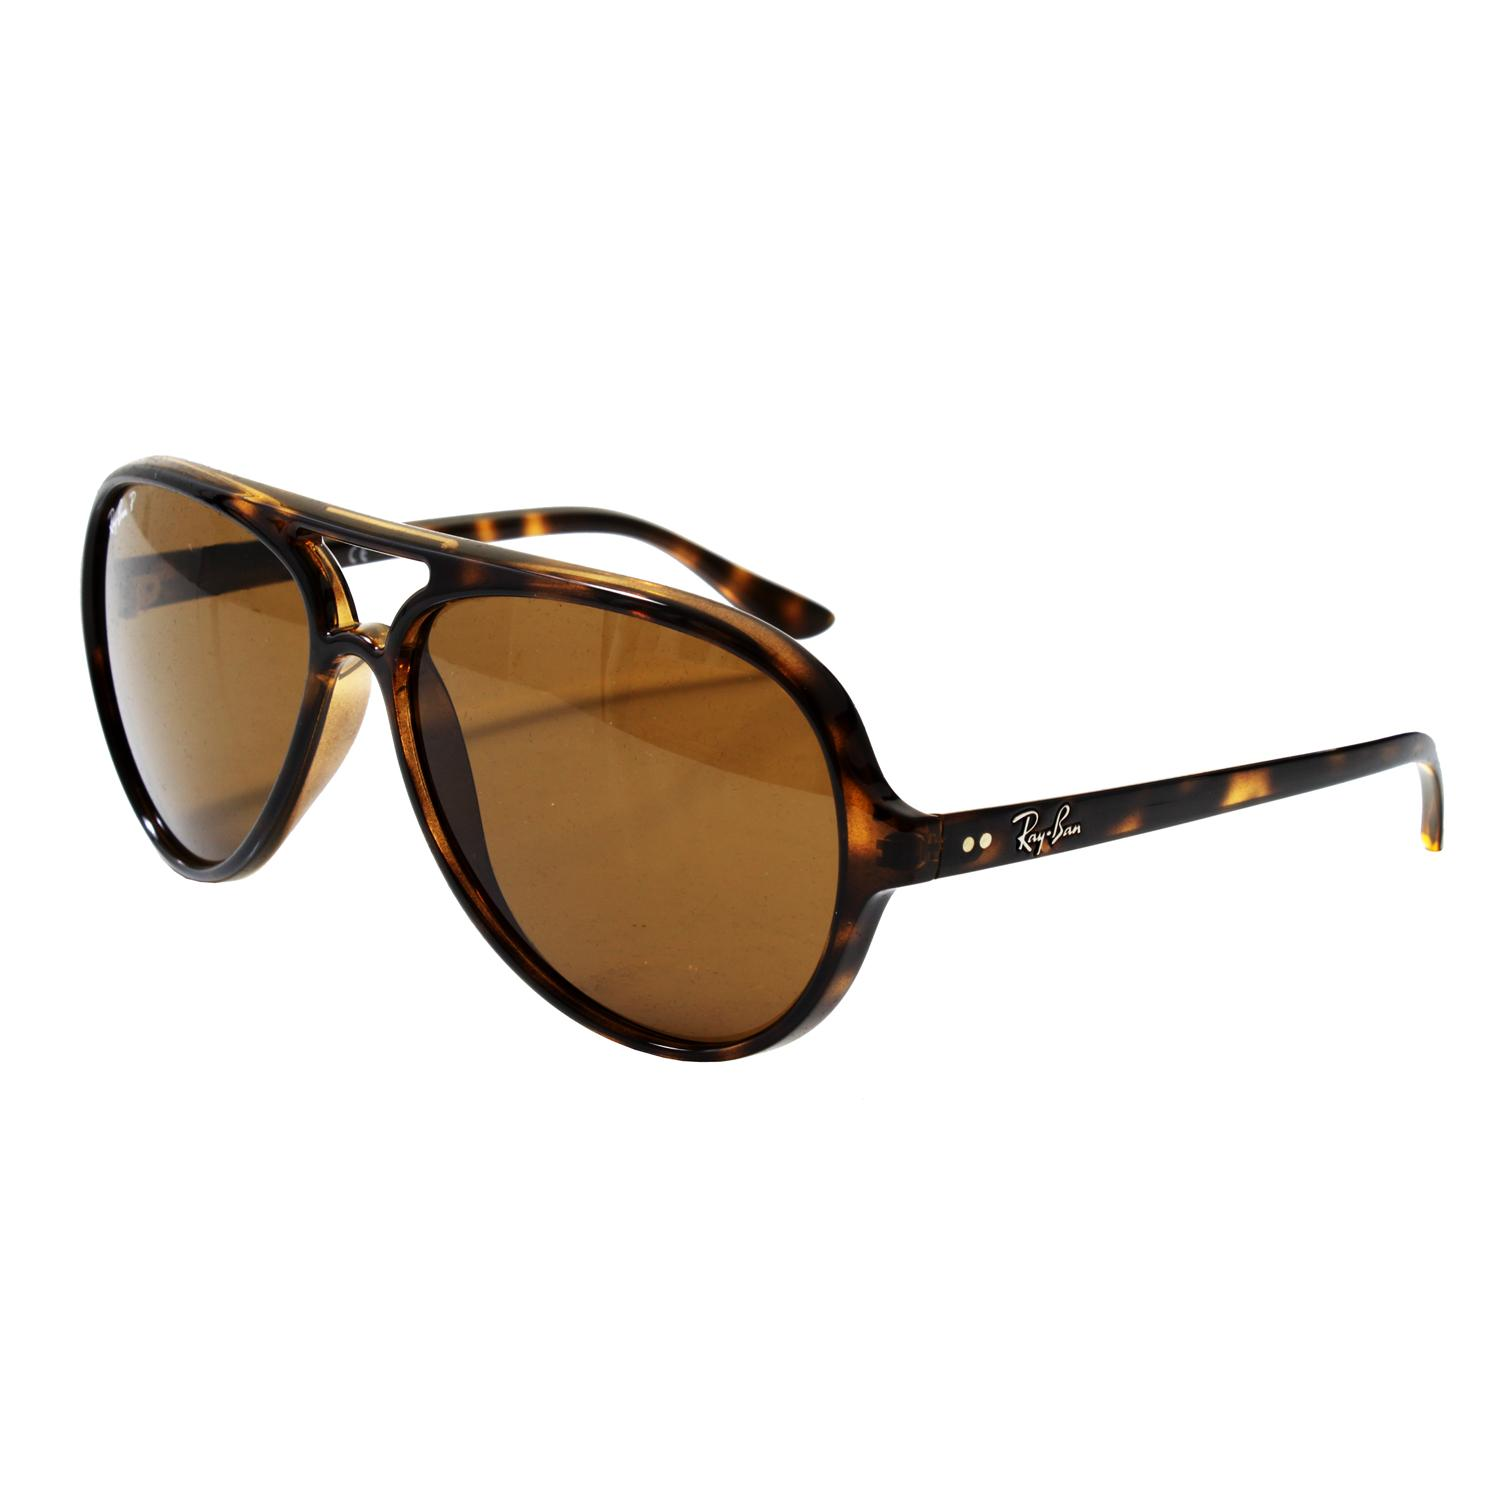 b0fea52d55 Ray Ban RB 4125 Cats 5000 Polarized Sunglasses